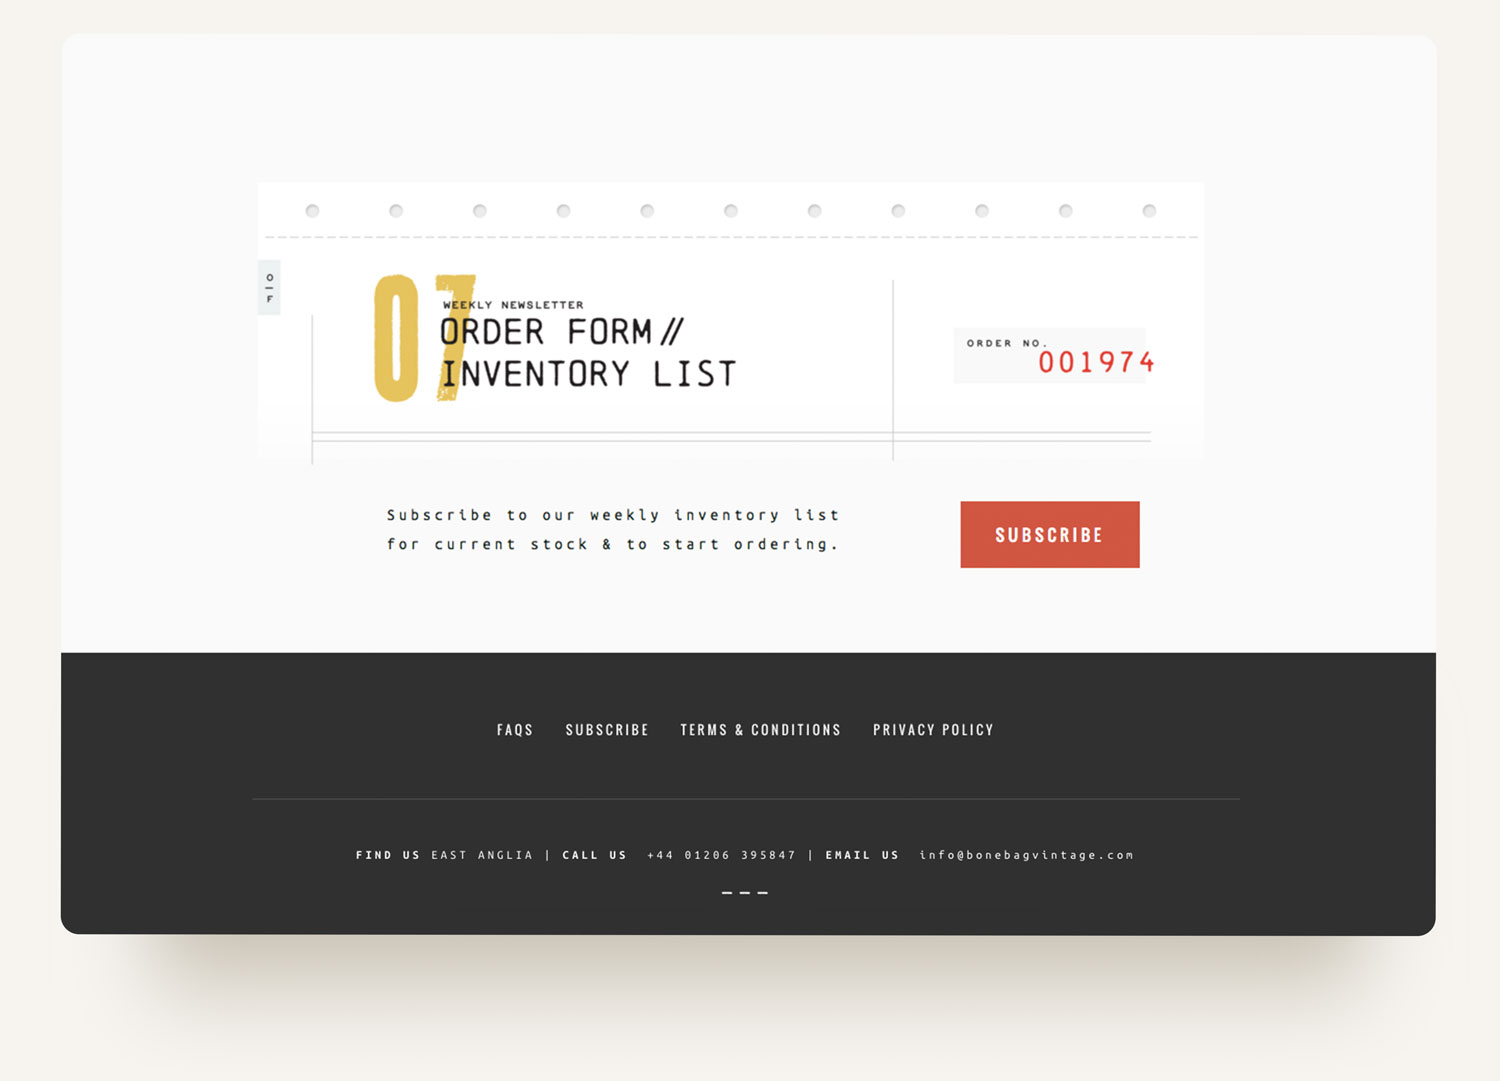 Subscribe website design with graphic of dot matrix paper with lo fi printer font. Squarespace ecommerce website design by Brittany Hurdle beckon webeckon